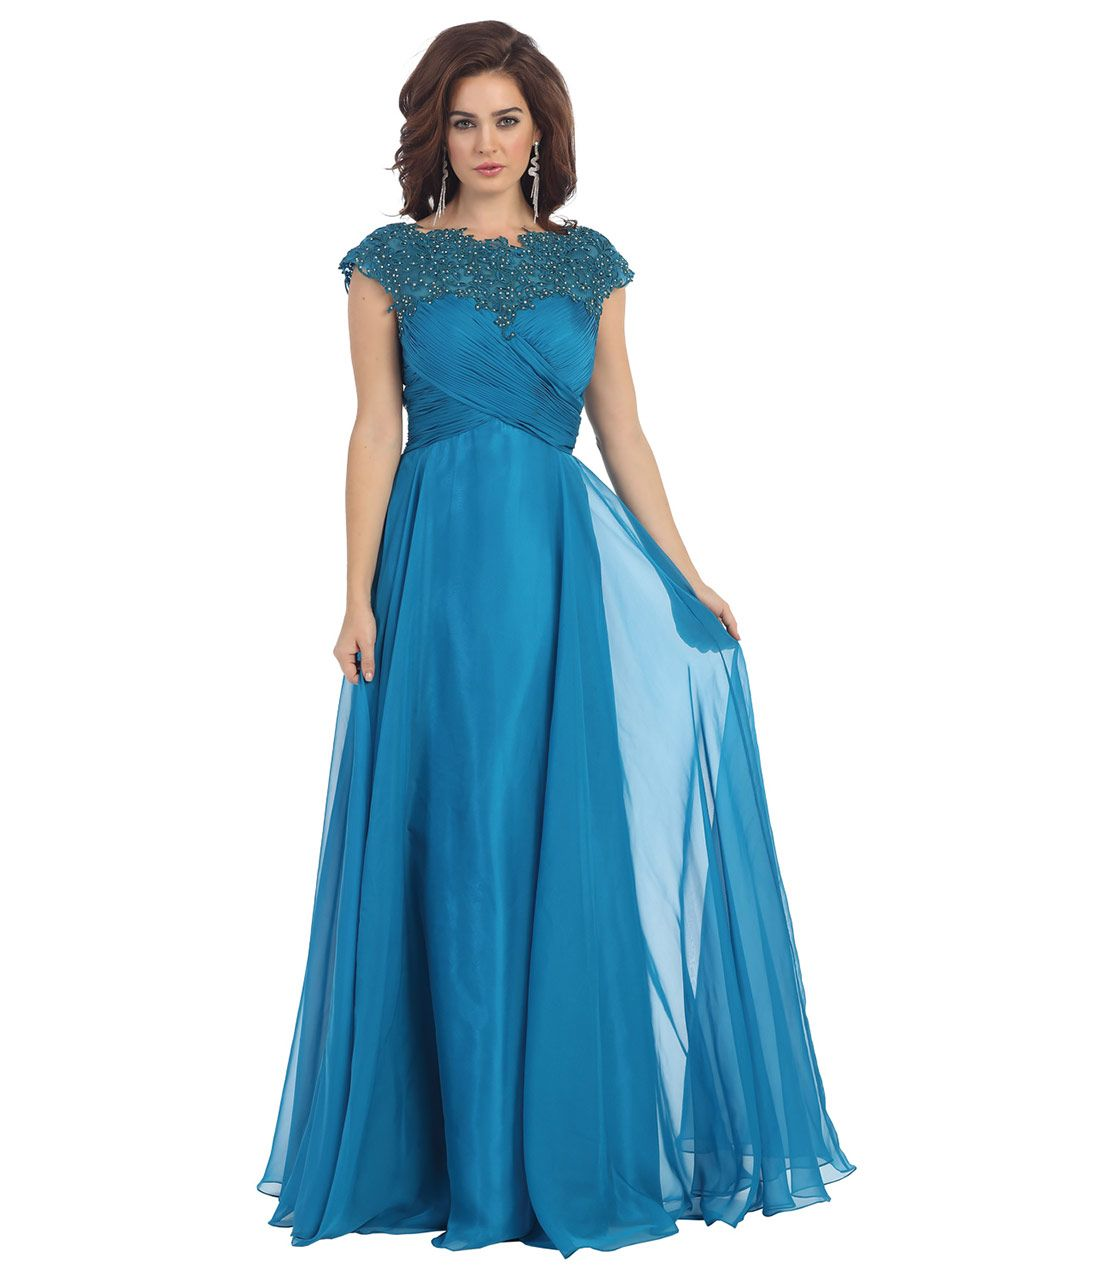 1940 S Style Prom Dresses Formal Dresses Evening Gowns Plus Size Gowns Formal Evening Gowns Formal Plus Size Formal Dresses [ 1275 x 1095 Pixel ]